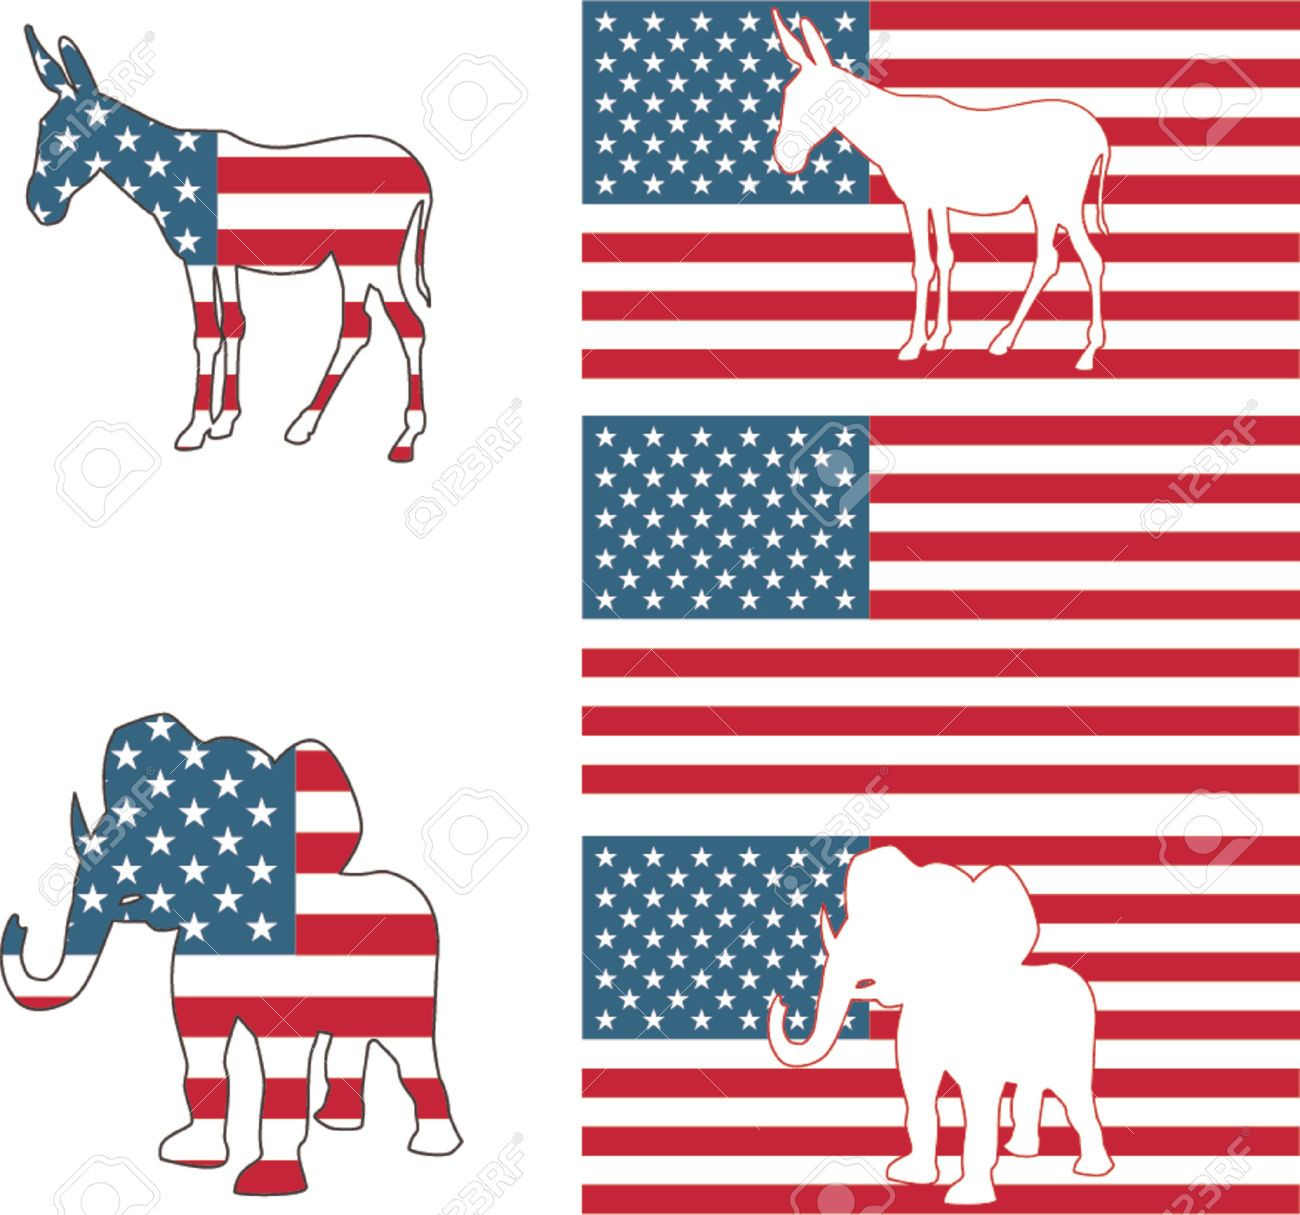 The Democrat And Republican Symbols Of A Donkey And Elephant